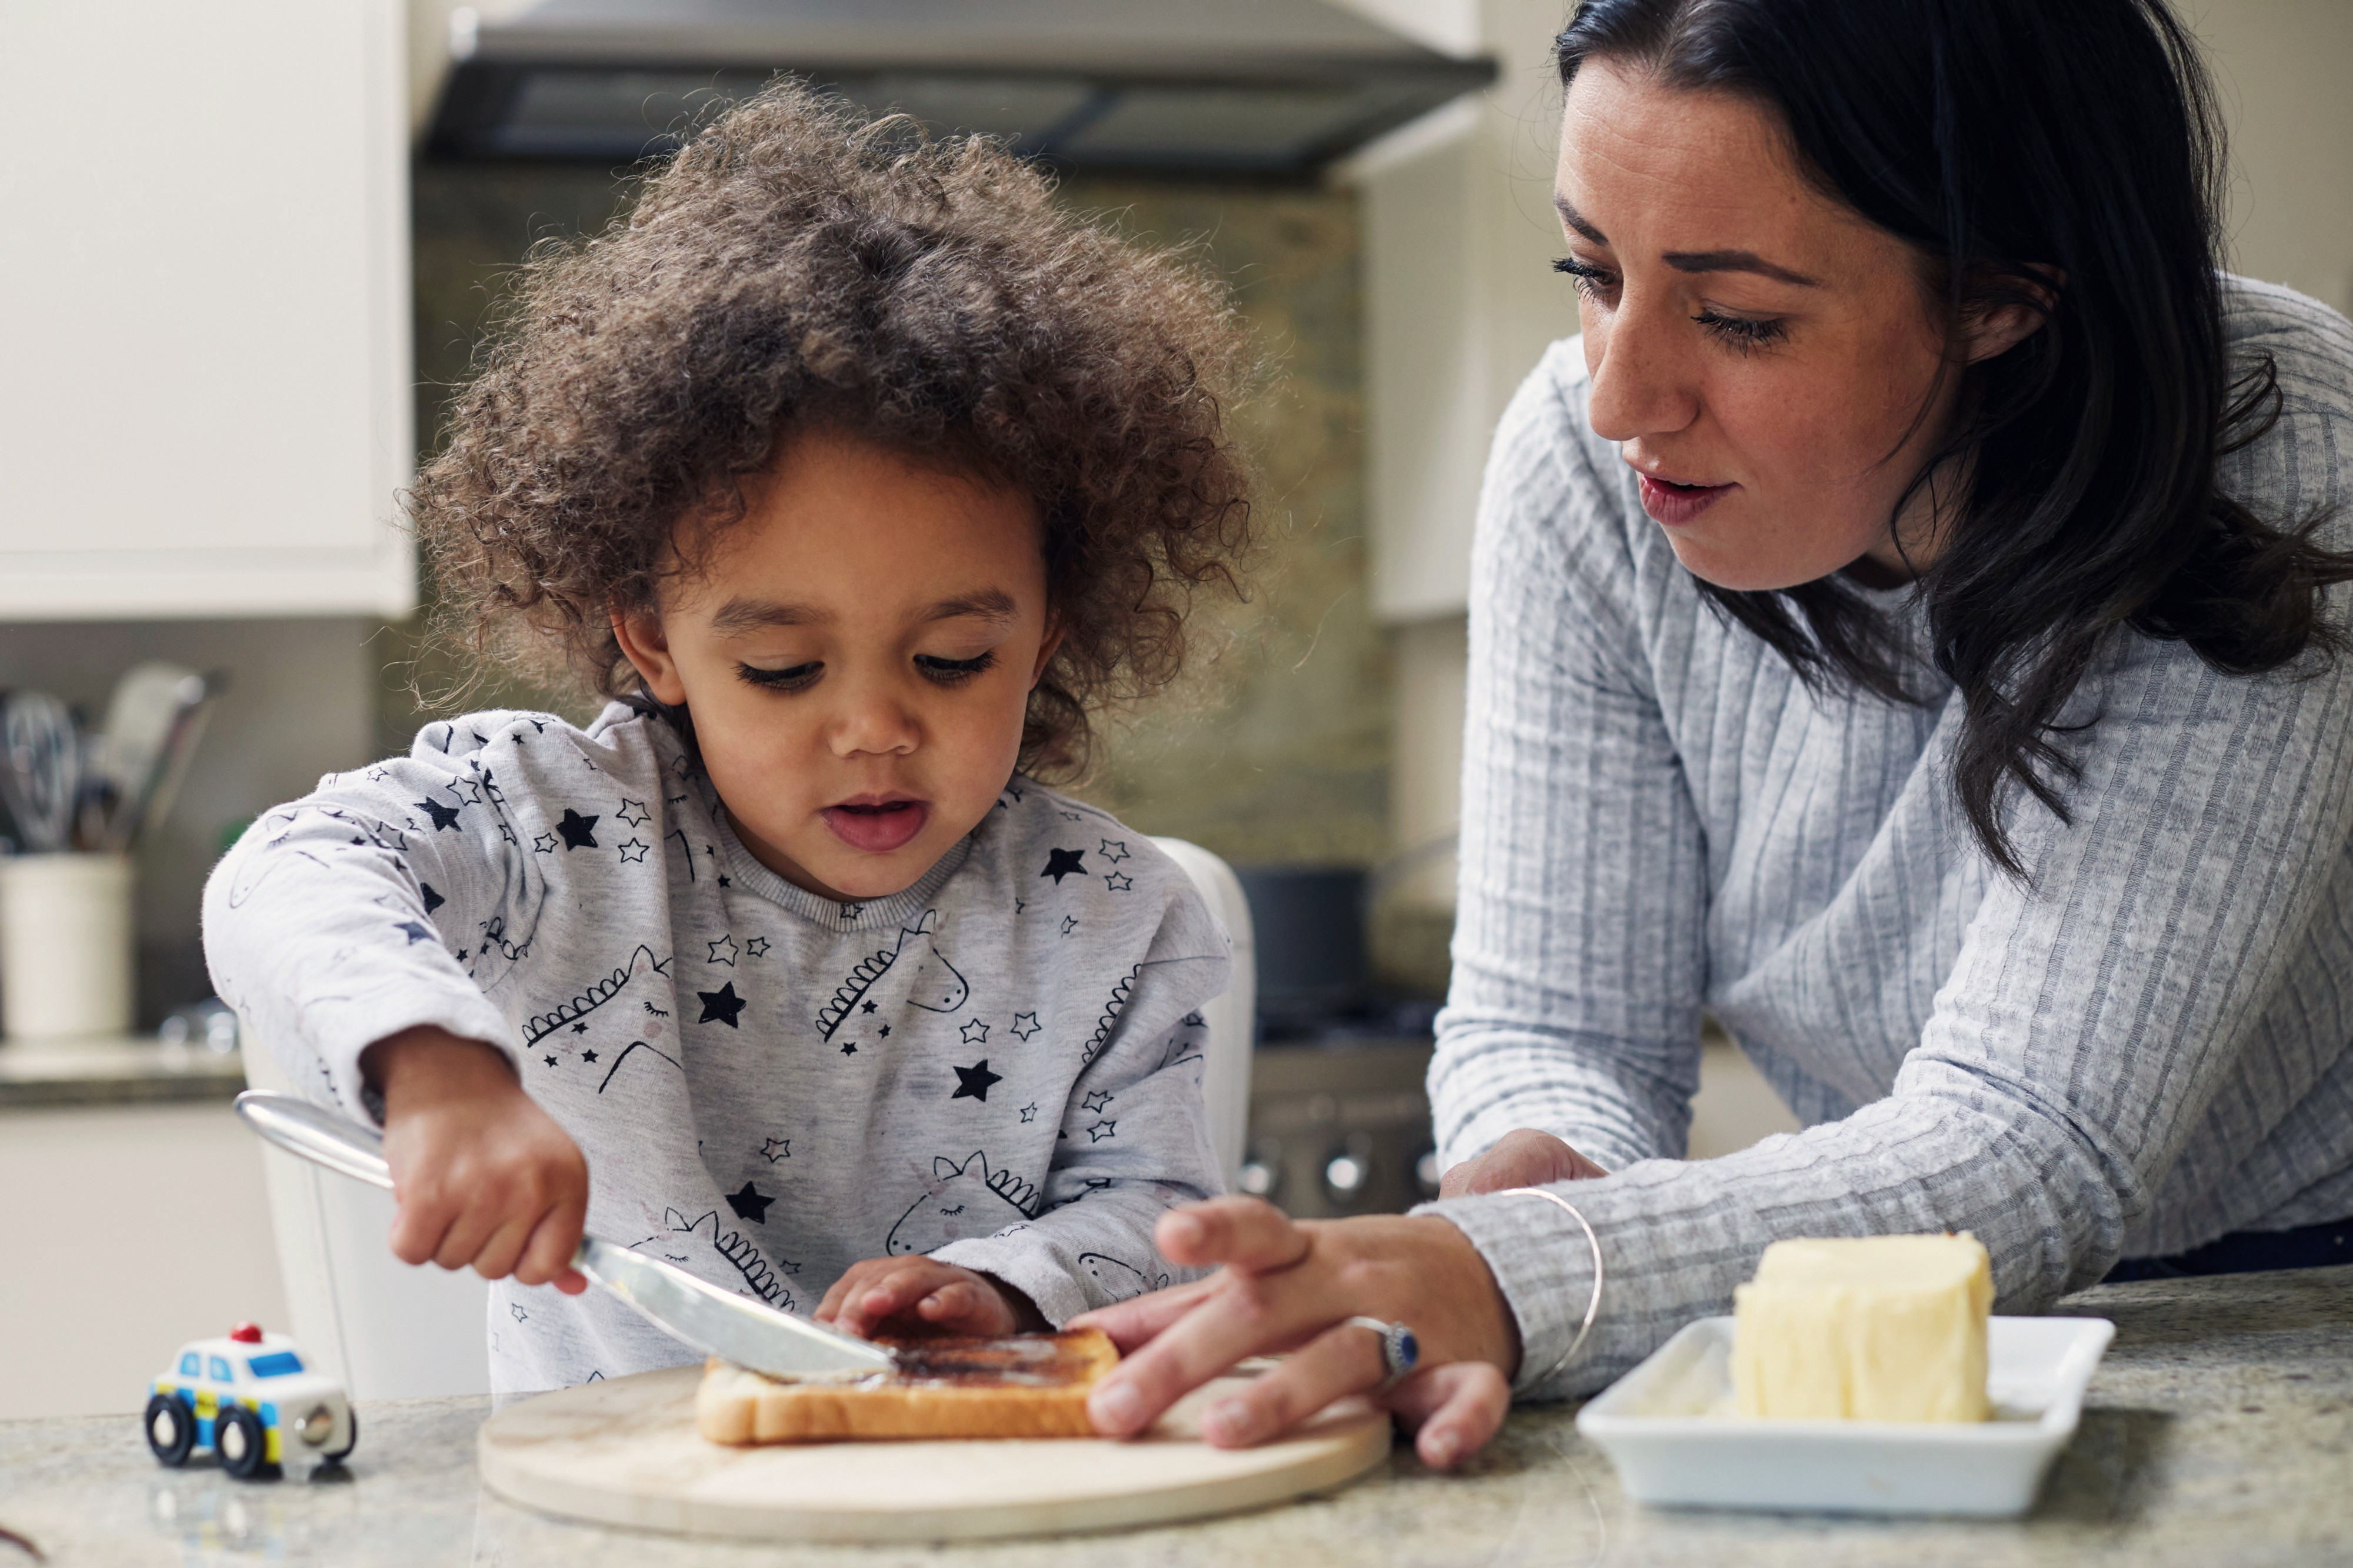 Mother and toddler daughter making a peanut butter sandwich together.